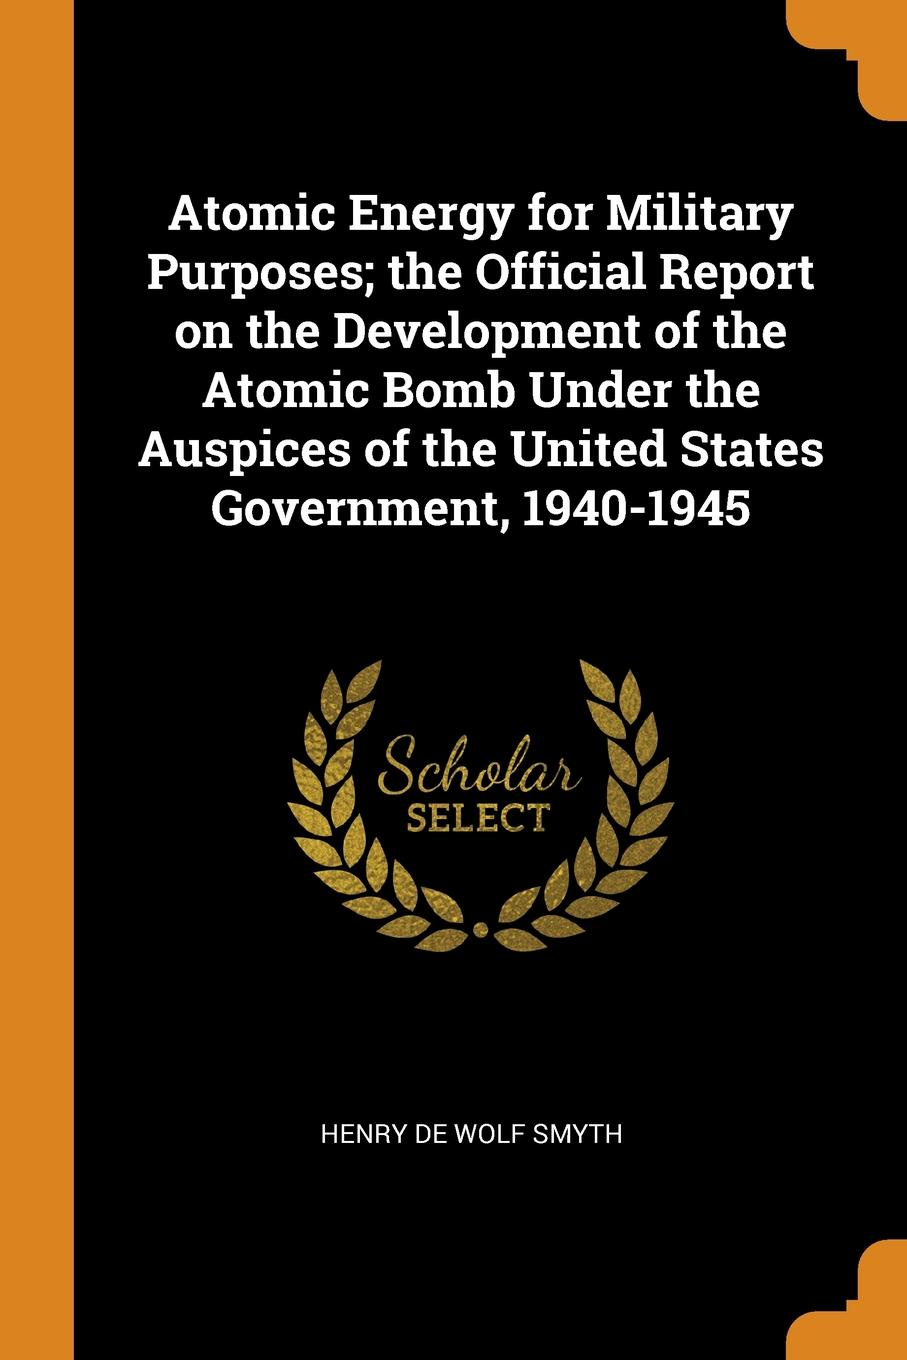 Henry De Wolf Smyth Atomic Energy for Military Purposes; the Official Report on the Development of the Atomic Bomb Under the Auspices of the United States Government, 1940-1945